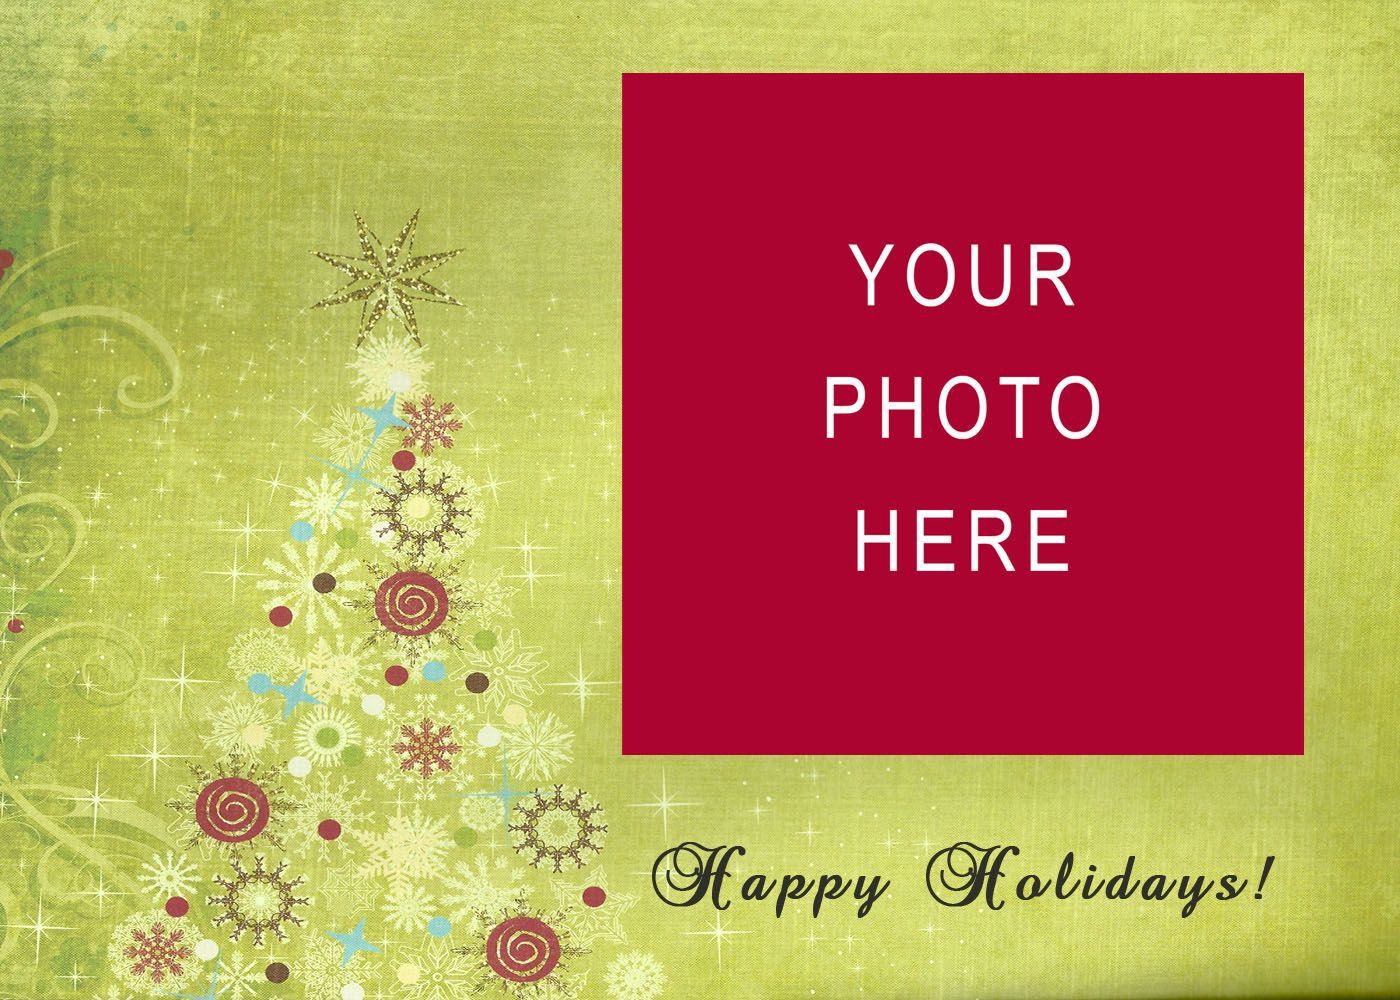 005 Amazing Free Download Holiday Card Template Photo Full